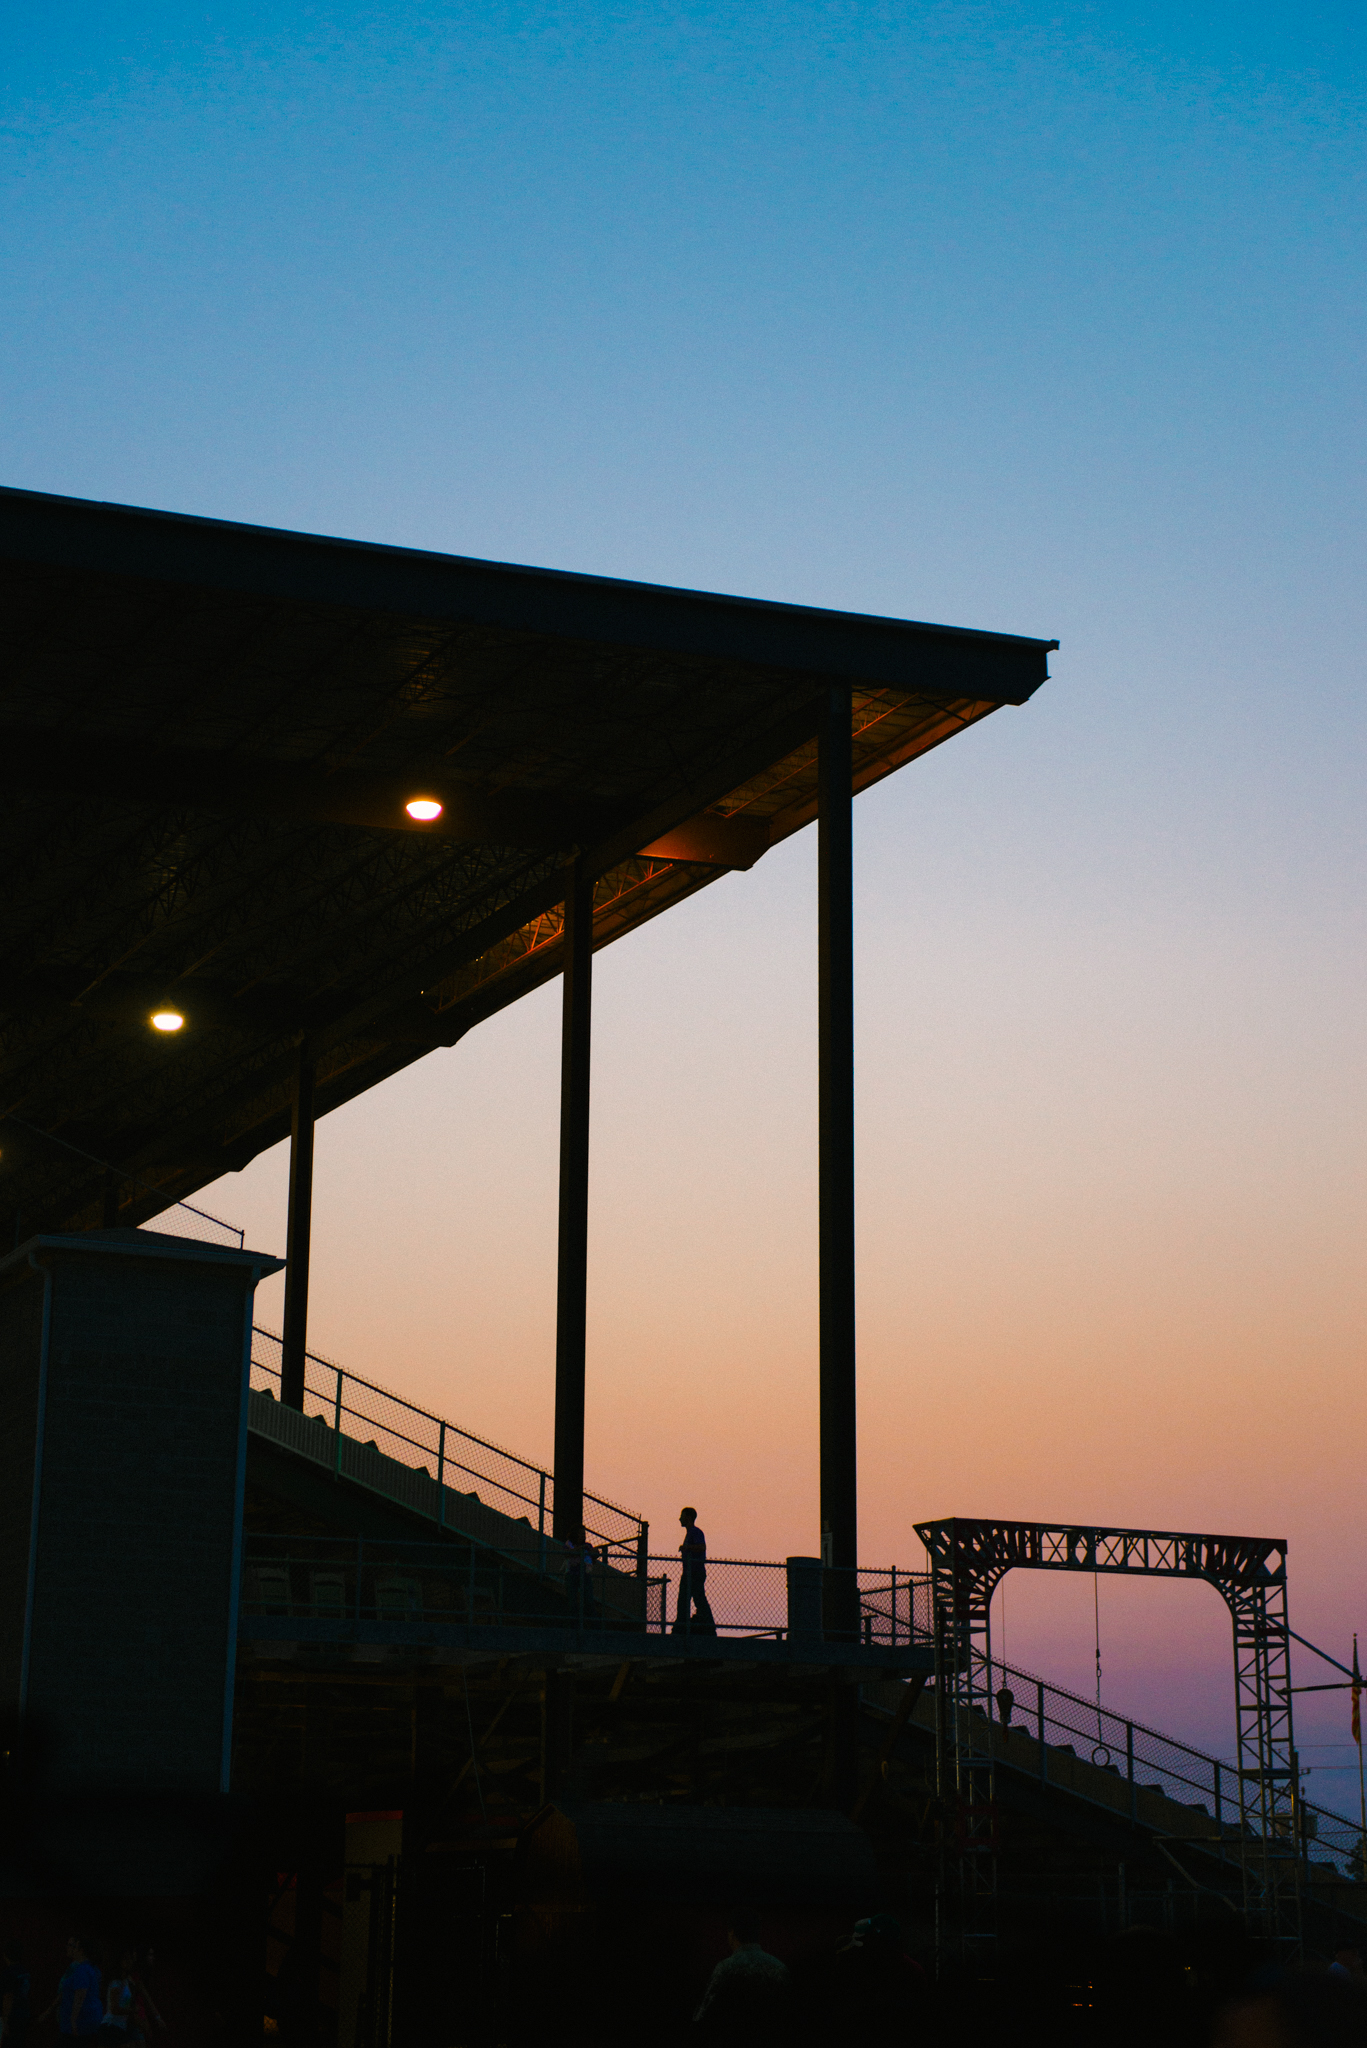 Grandstand super saturated-1.JPG